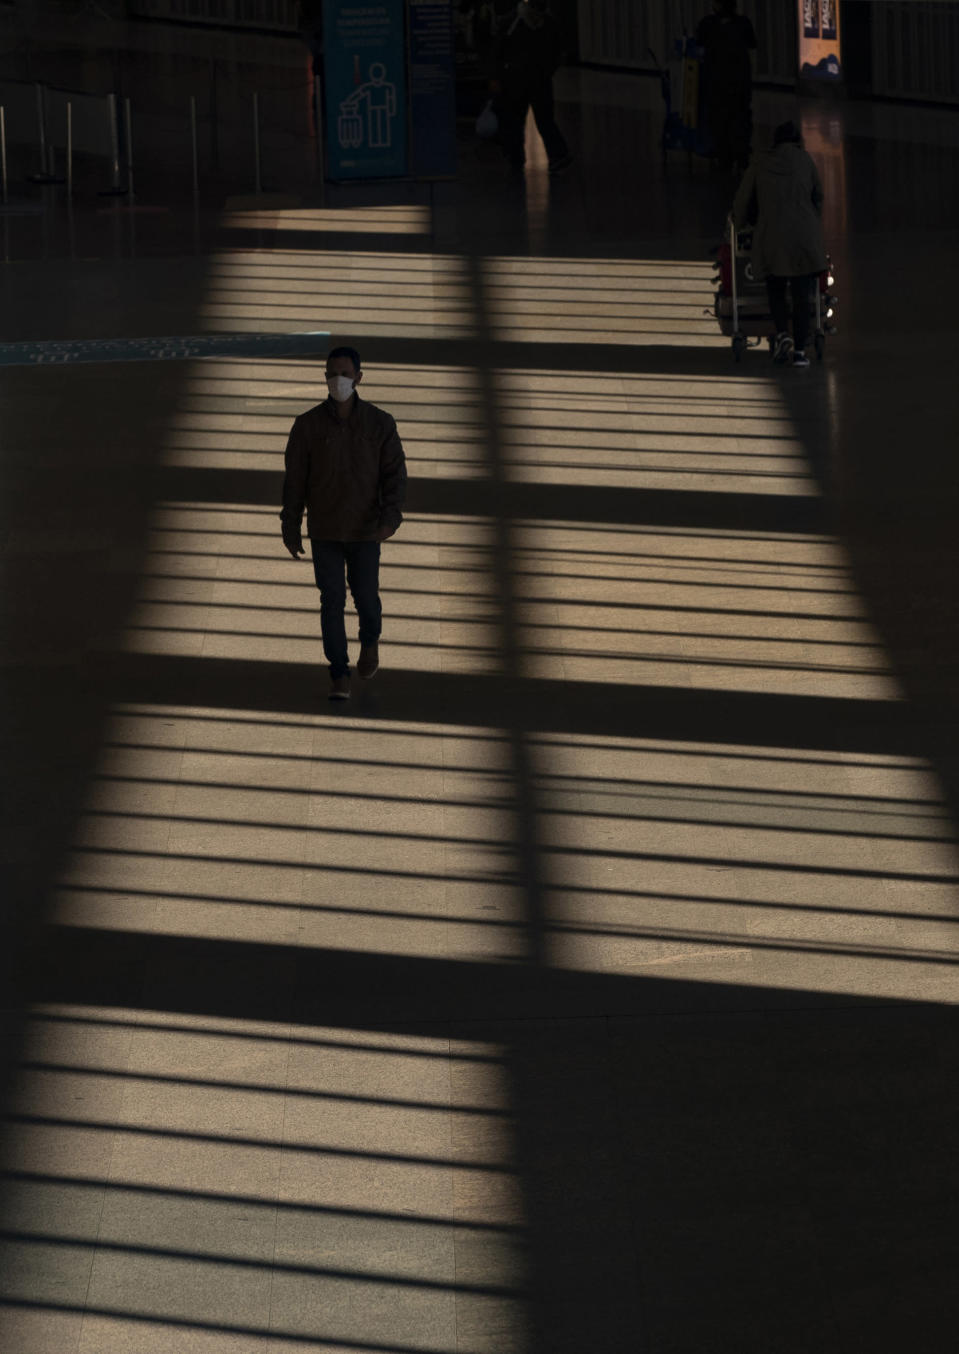 A man walks through an almost empty corridor inside the Sao Paulo International Airport in Guarulhos, Brazil, Wednesday, May 27, 2020. According to the airport administration, Brazil's busiest airport has had an average reduction of 85% in flights, due to the COVID-19 pandemic. (AP Photo/Andre Penner)